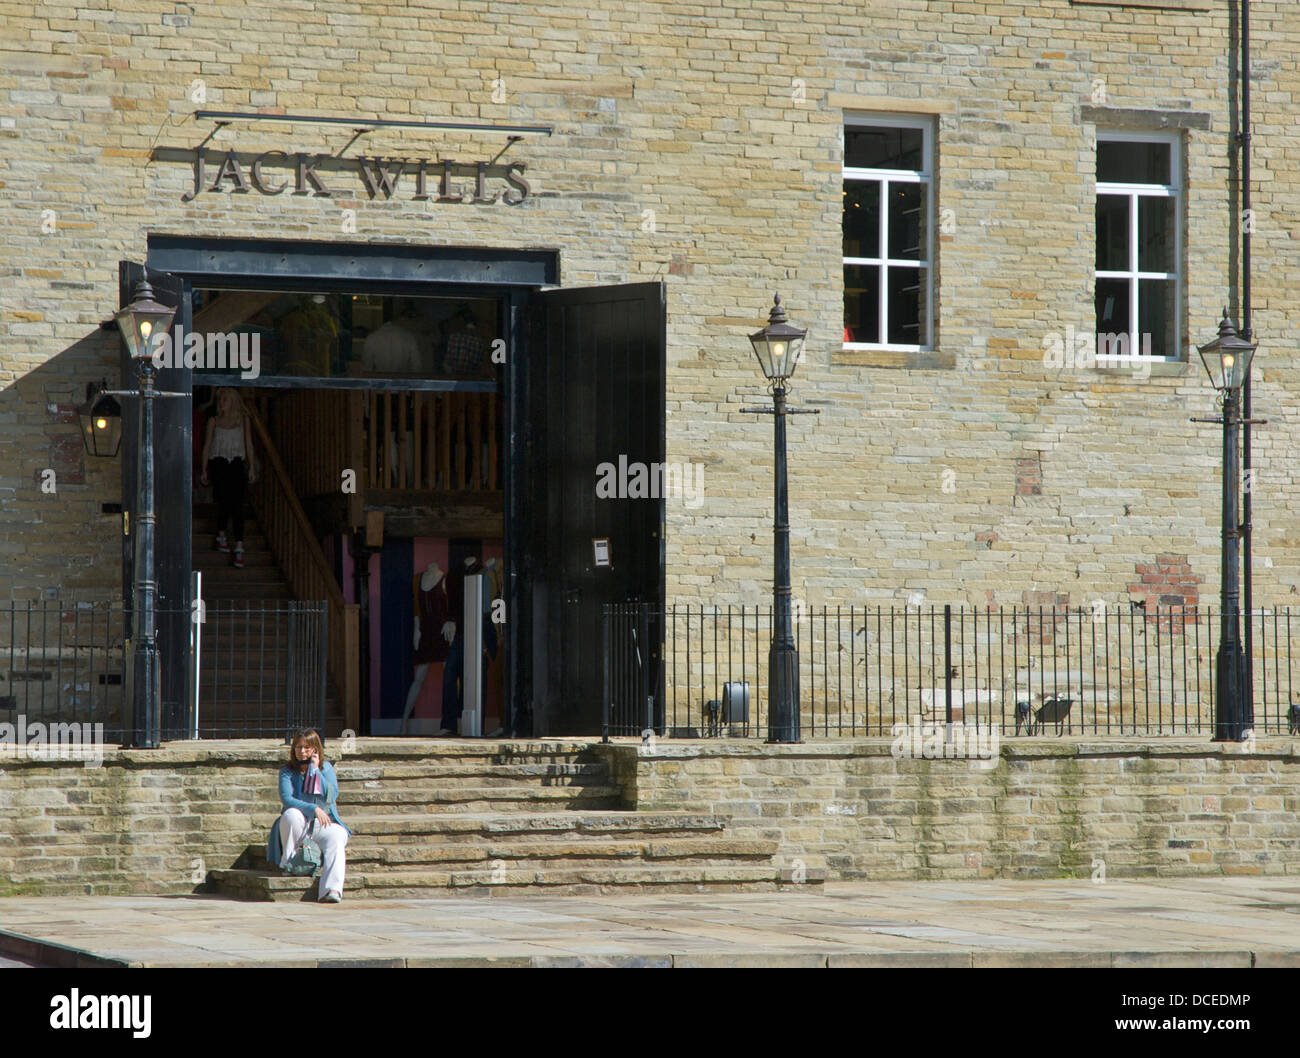 Woman sitting on steps outside Jack Wills shop, Dean Clough Mills, Halifax, West Yorkshire, England UK - Stock Image